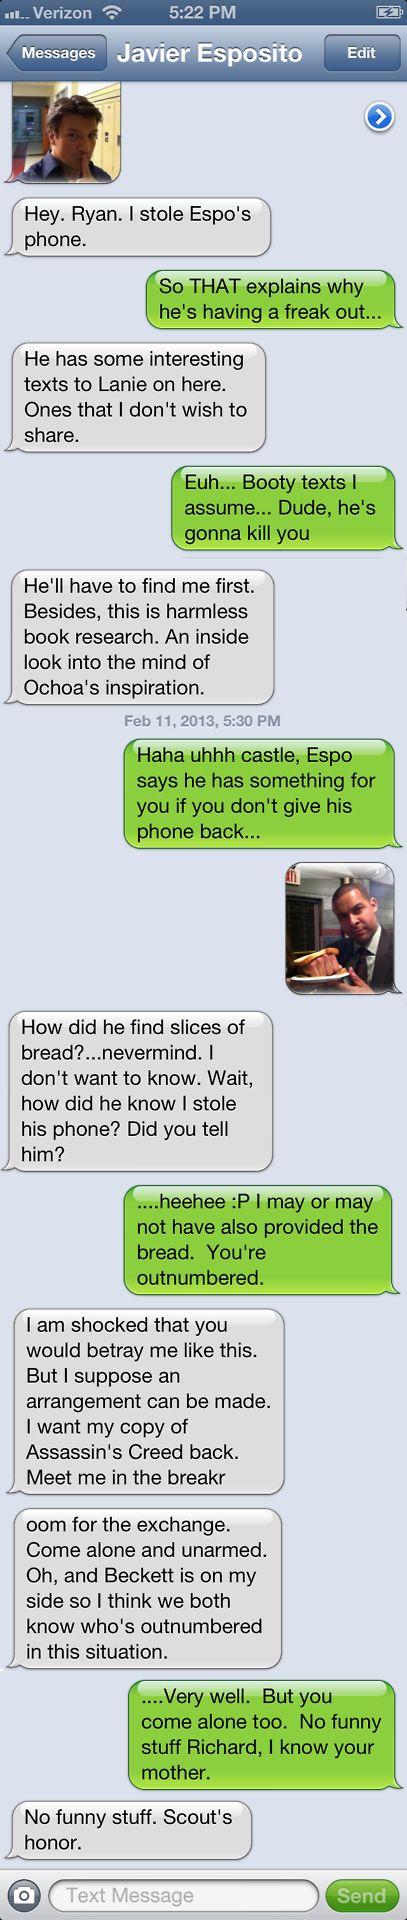 Mine and my friend's Castle fanblog, Texts from Rysposito! Castle fans, check it out! #castle #textsfromrysposito